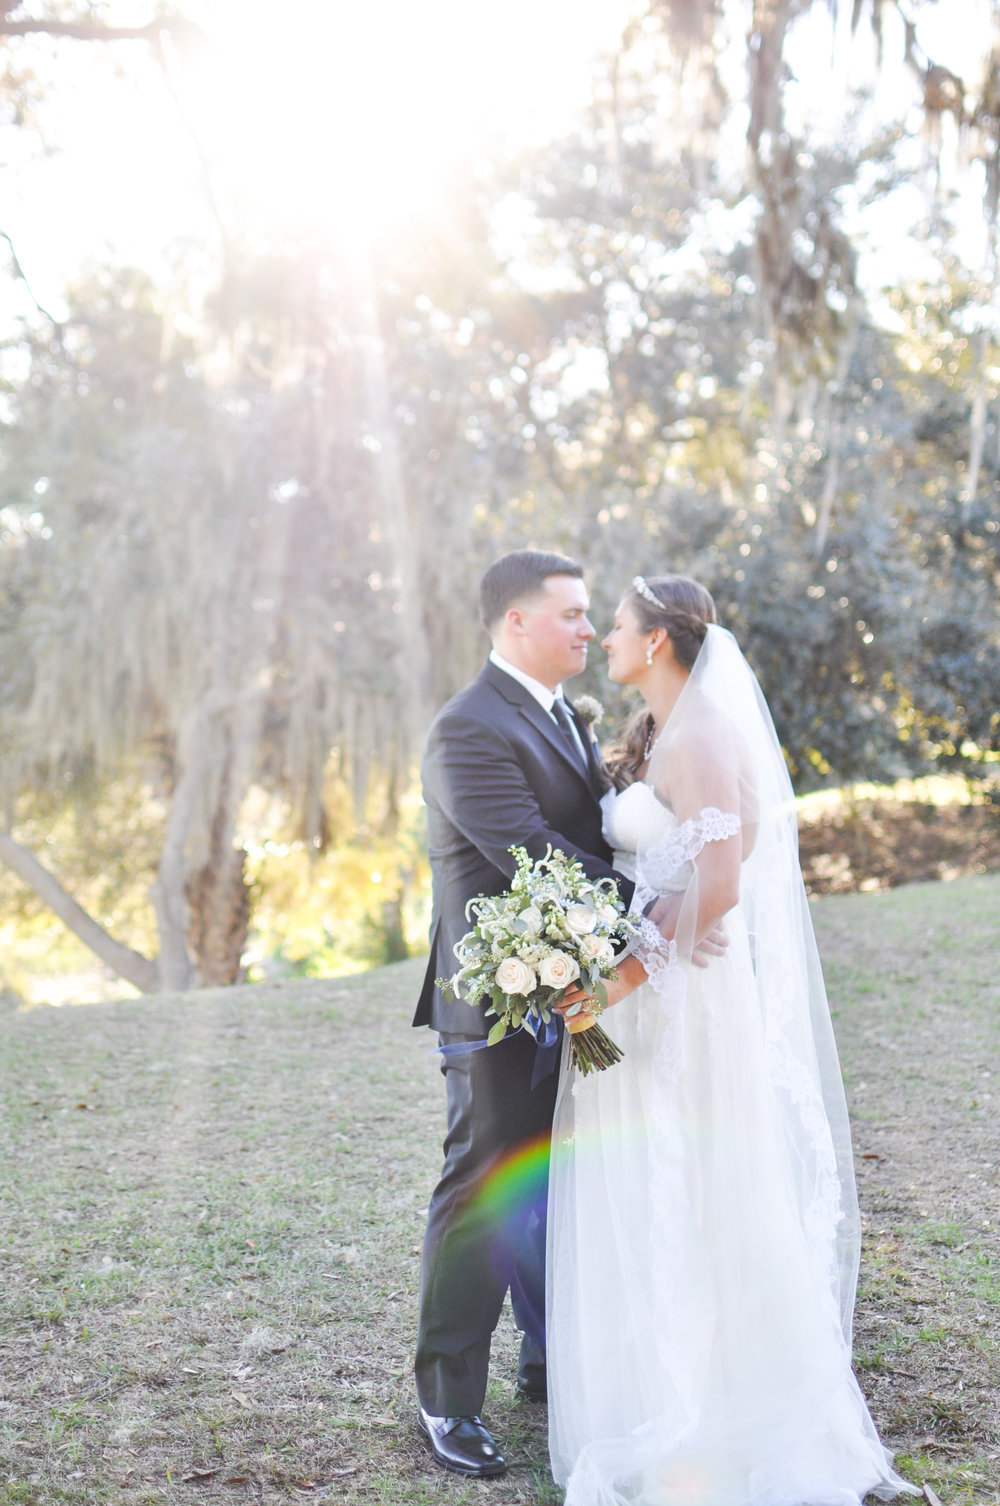 amy-daring-photography-ti-adora-7500-ivory-and-beau-bridal-boutique-savannah-wedding-planner-savannah-bridal-boutique-savannah-wedding-gowns-savannah-bridal-boutique-savannah-weddings-The-Cuthbert-House Inn-wedding-beaufort-wedding-21.jpg